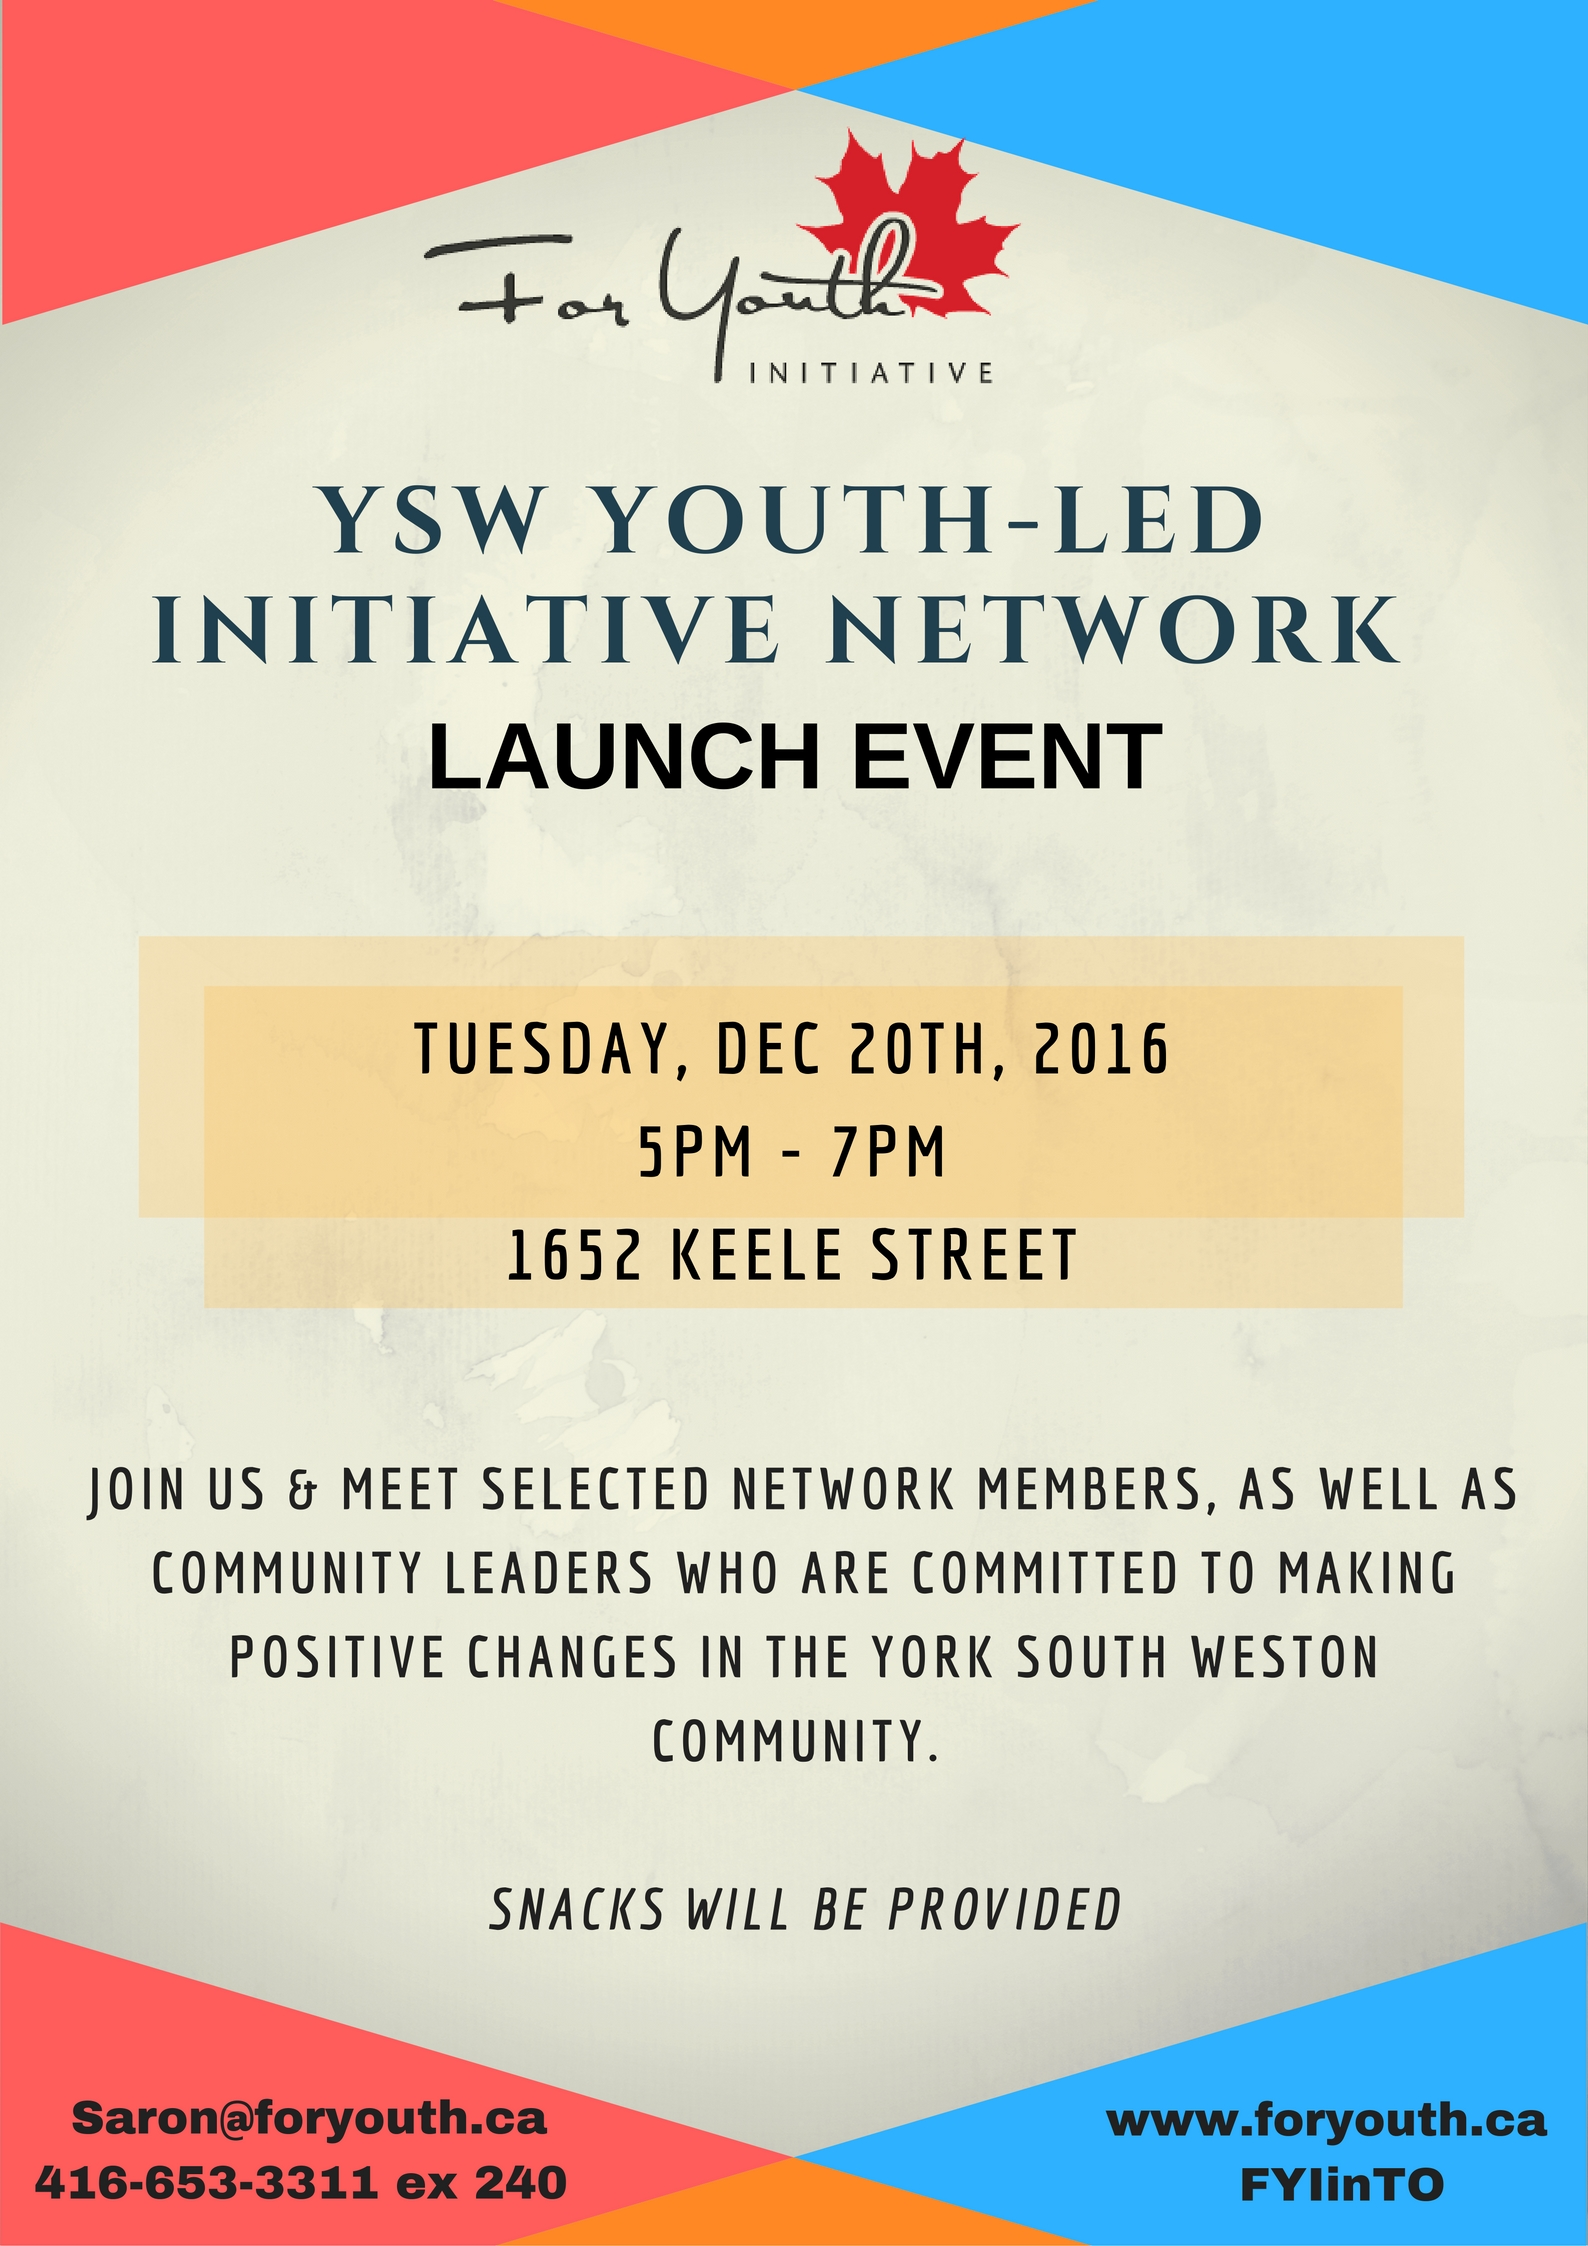 YSW_Youth-led_Initiative_network_launch_event_(1).jpg